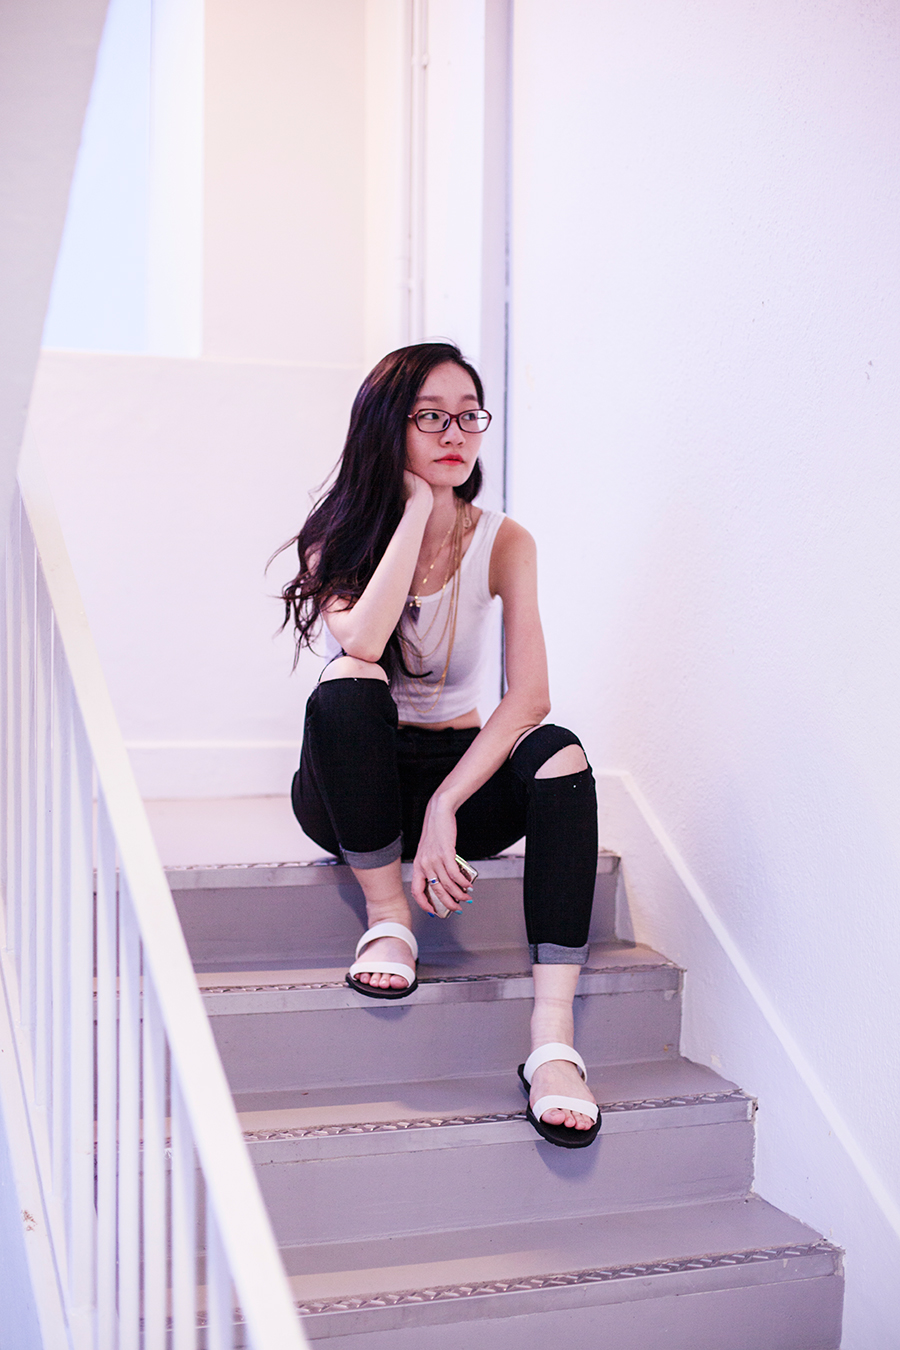 Monochromatic casual outfit: Boylymia ripped jeans, WholesaleBuying white tank crop top, Dealsale amethyst necklace, Firmoo red framed glasses, BlackOutSG white sandals.